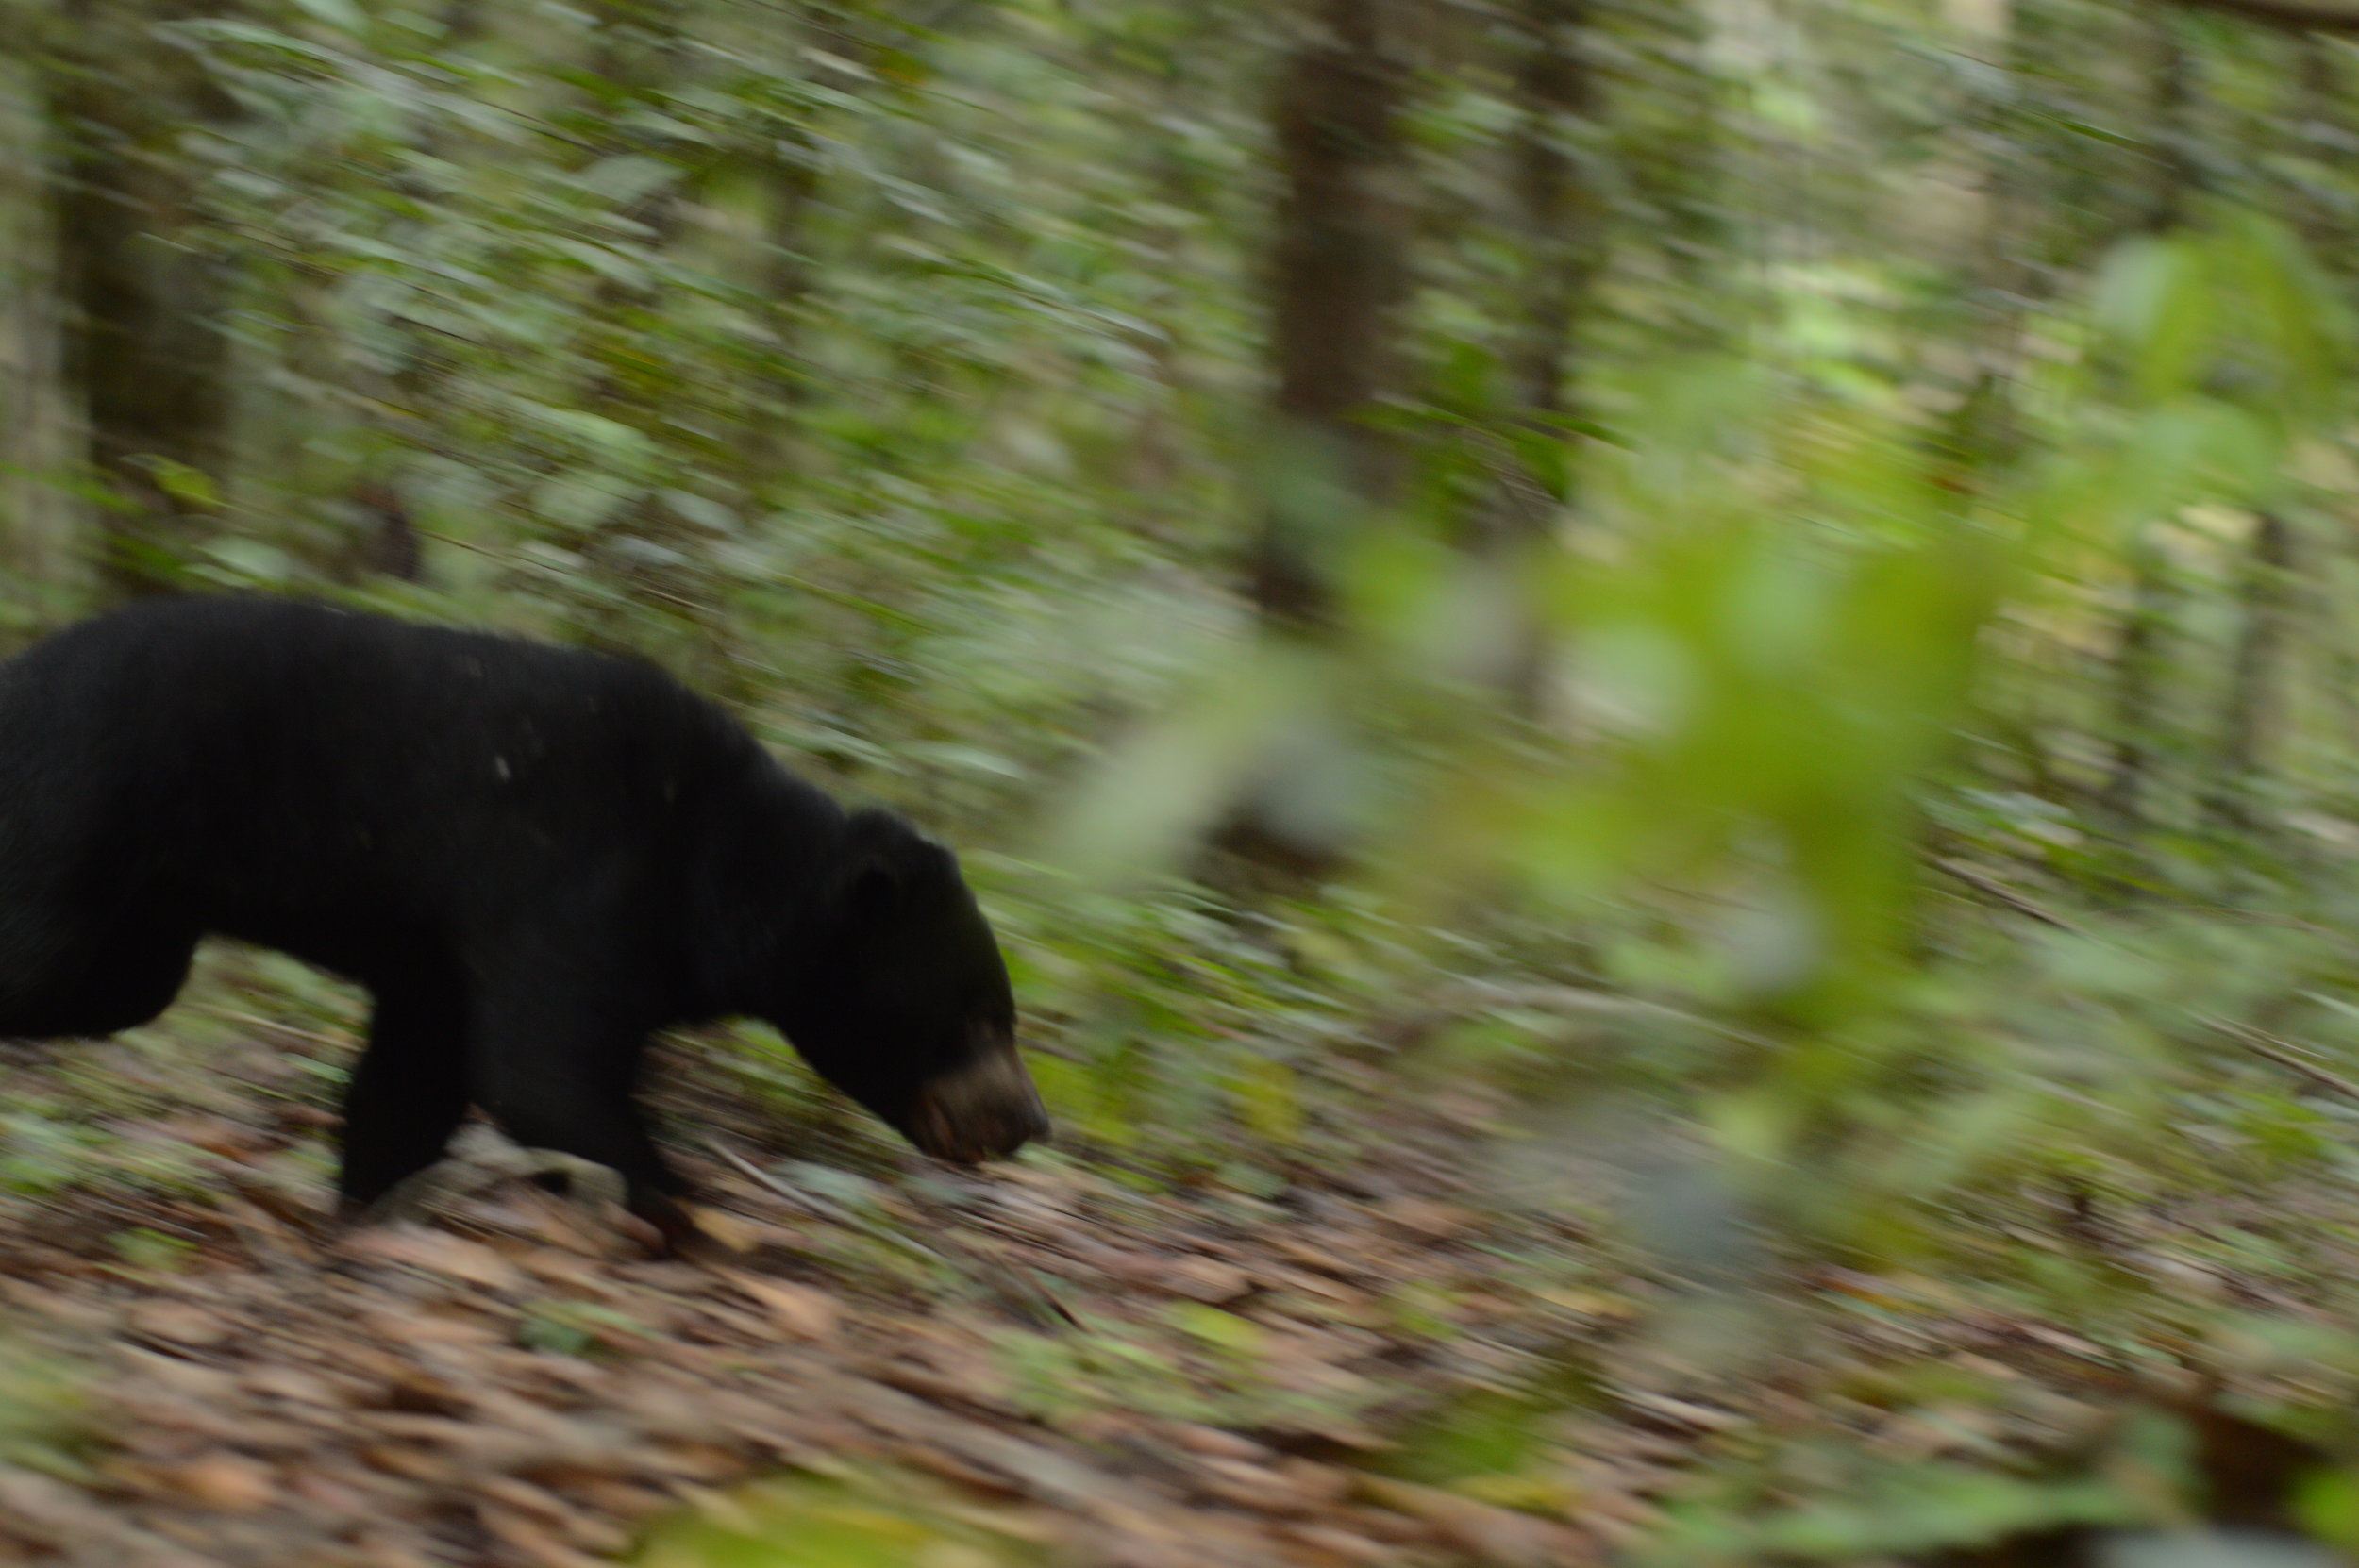 The sun bear disappeared into the forest immediately following release